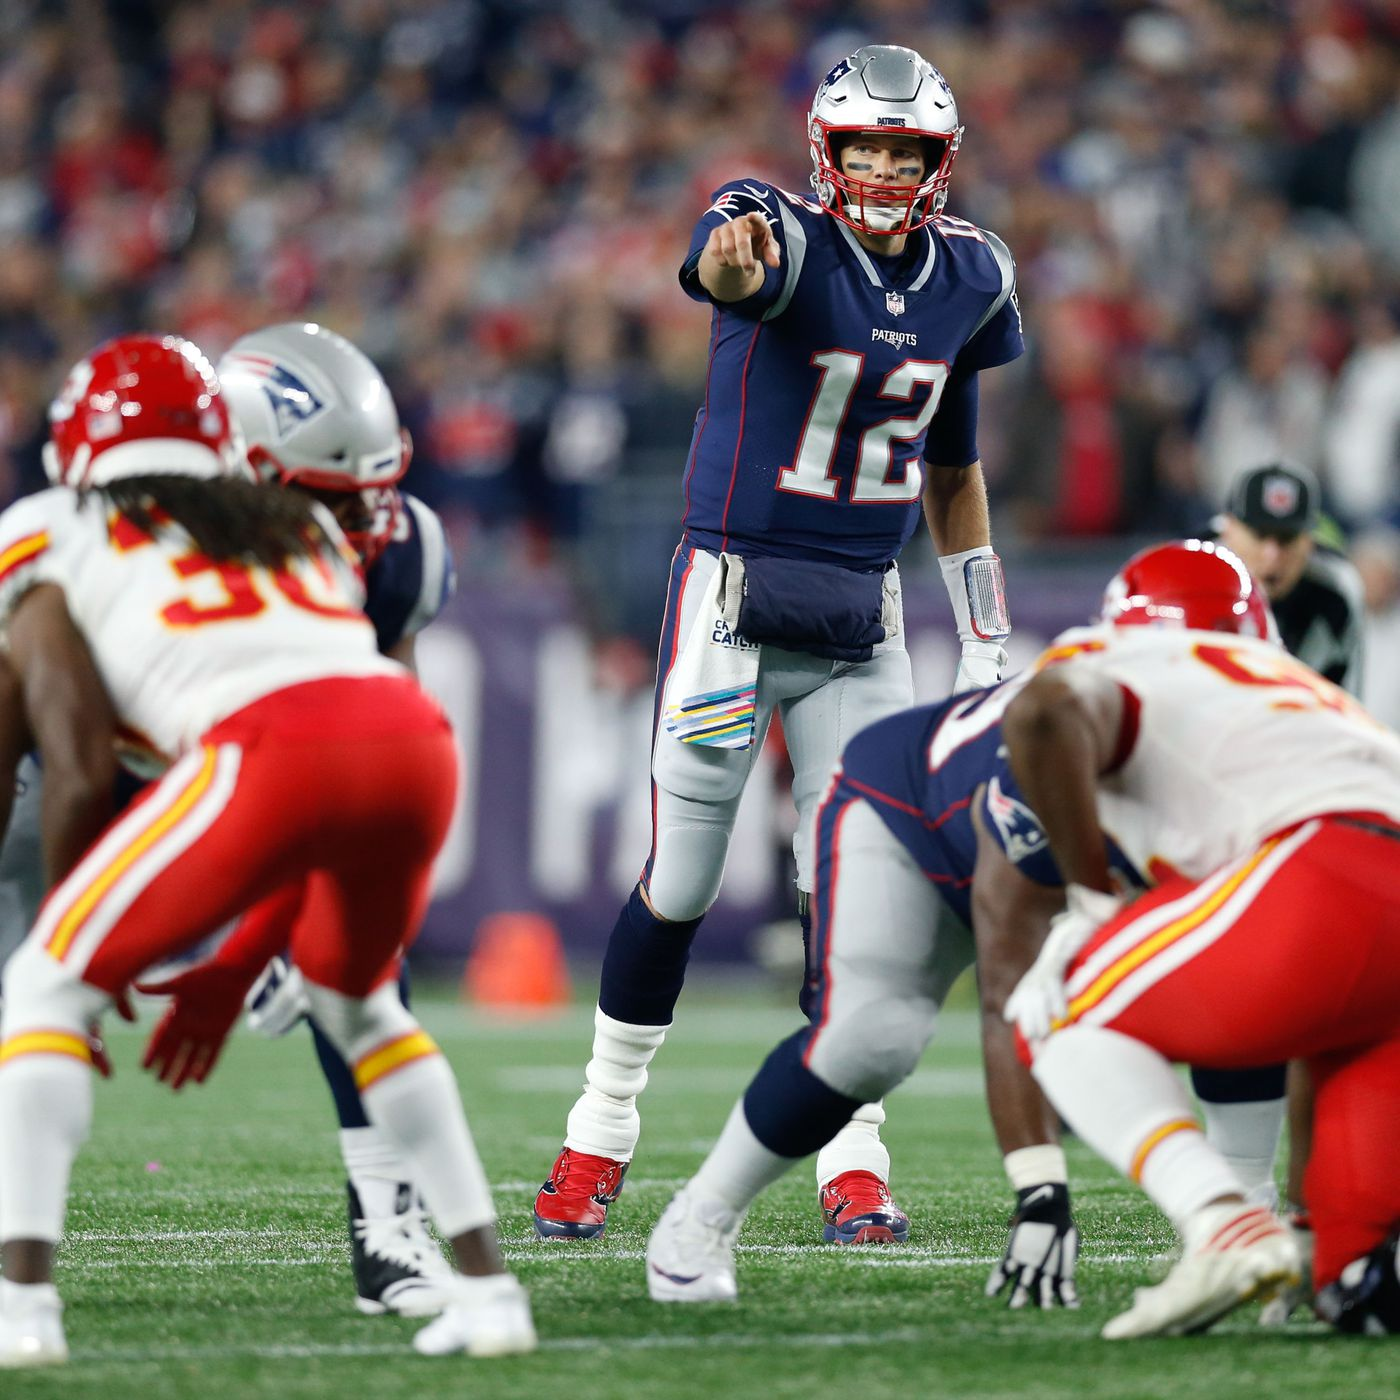 c1a56c74ffd AFC Championship  3 offensive keys to victory for Patriots against Chiefs -  Pats Pulpit